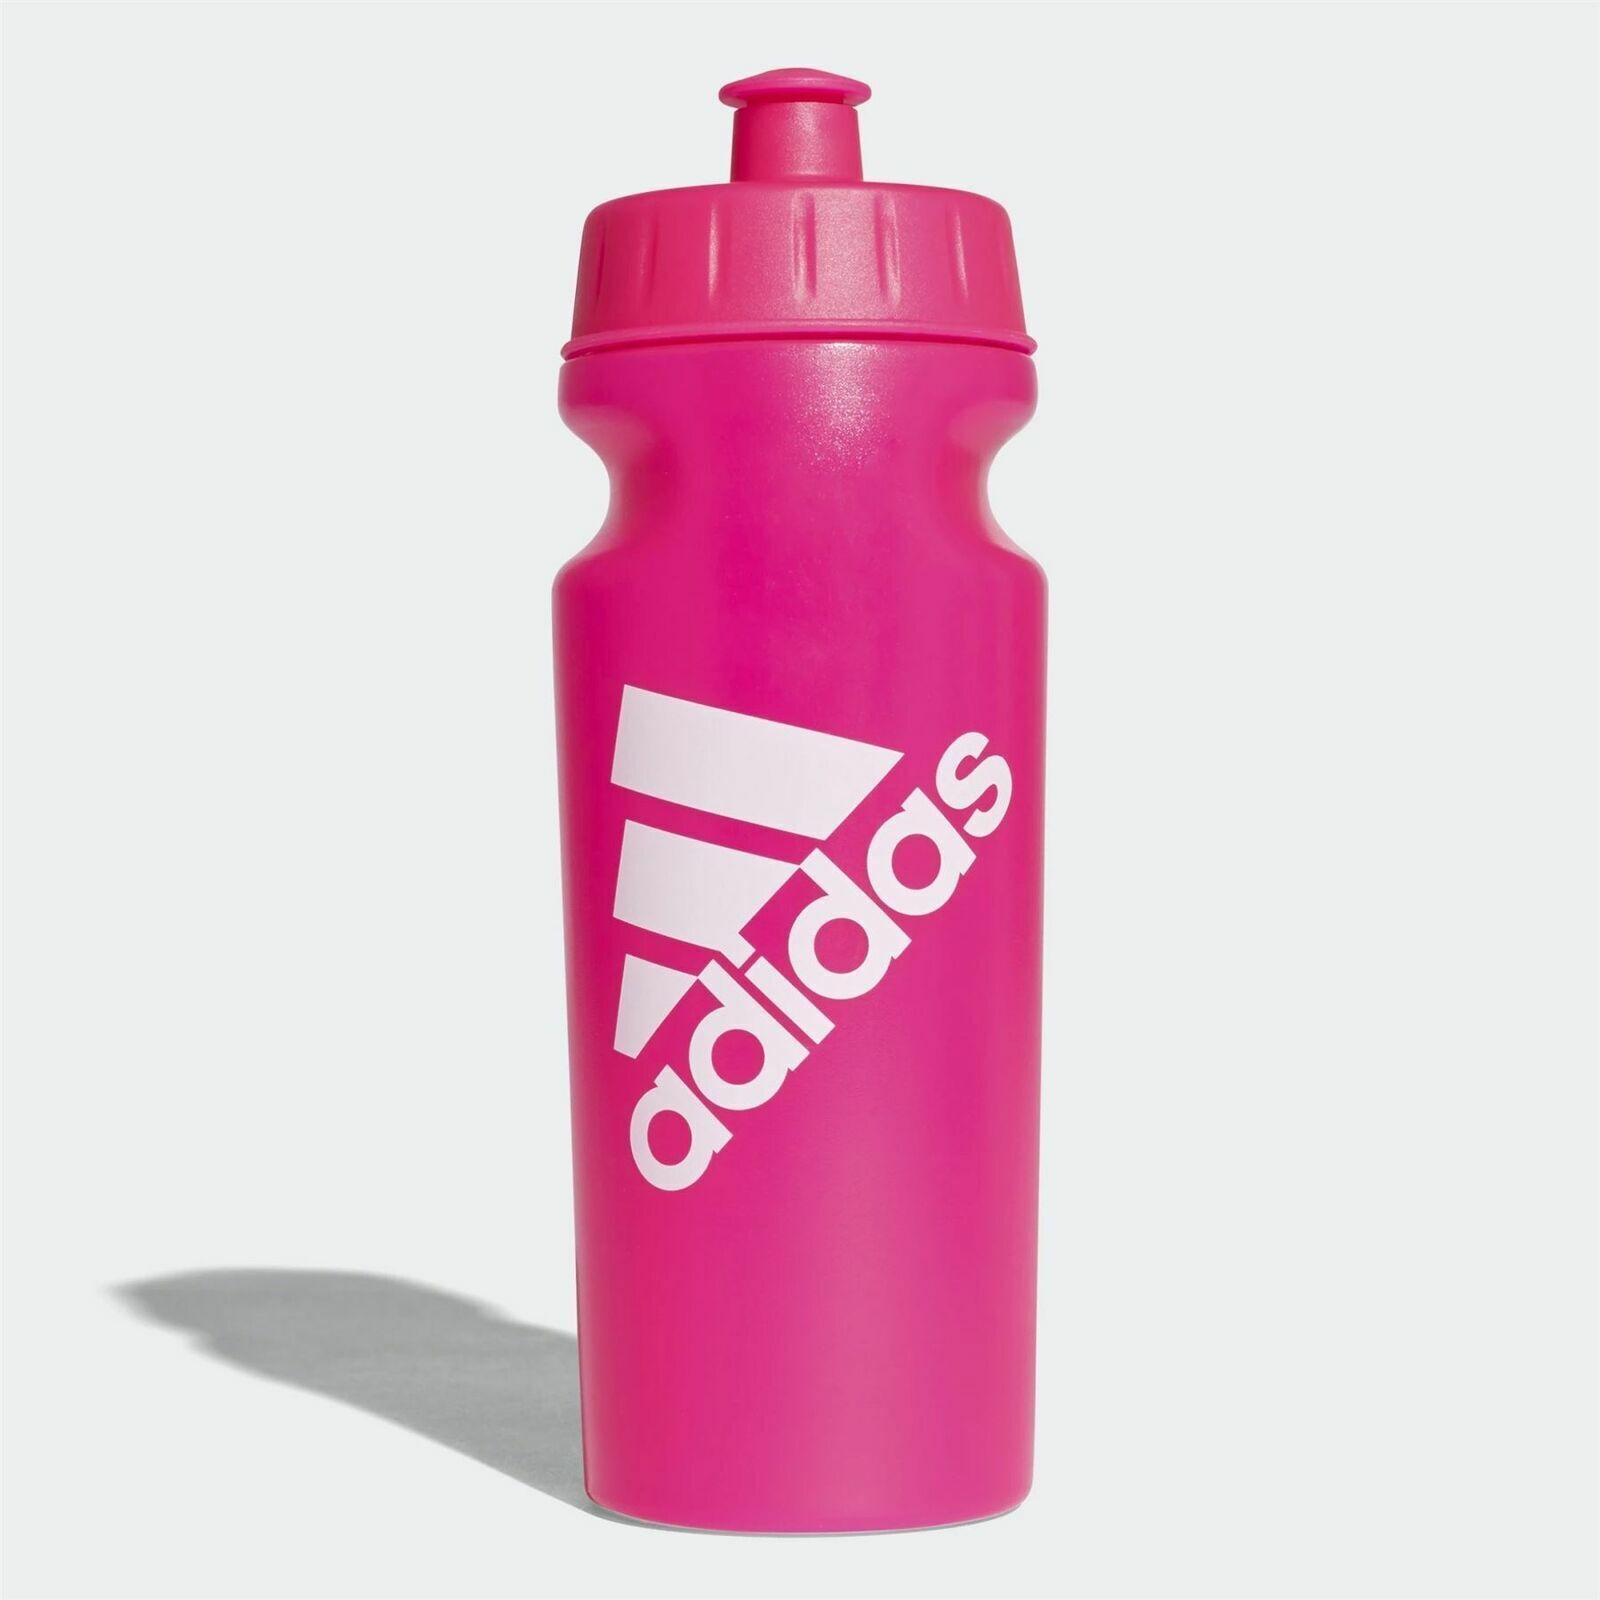 BORRACCIA ADIDAS PERFORMANCE PLASTICA DJ2233 ROSA FUCSIA DONNA 500 ml - 0,5 L